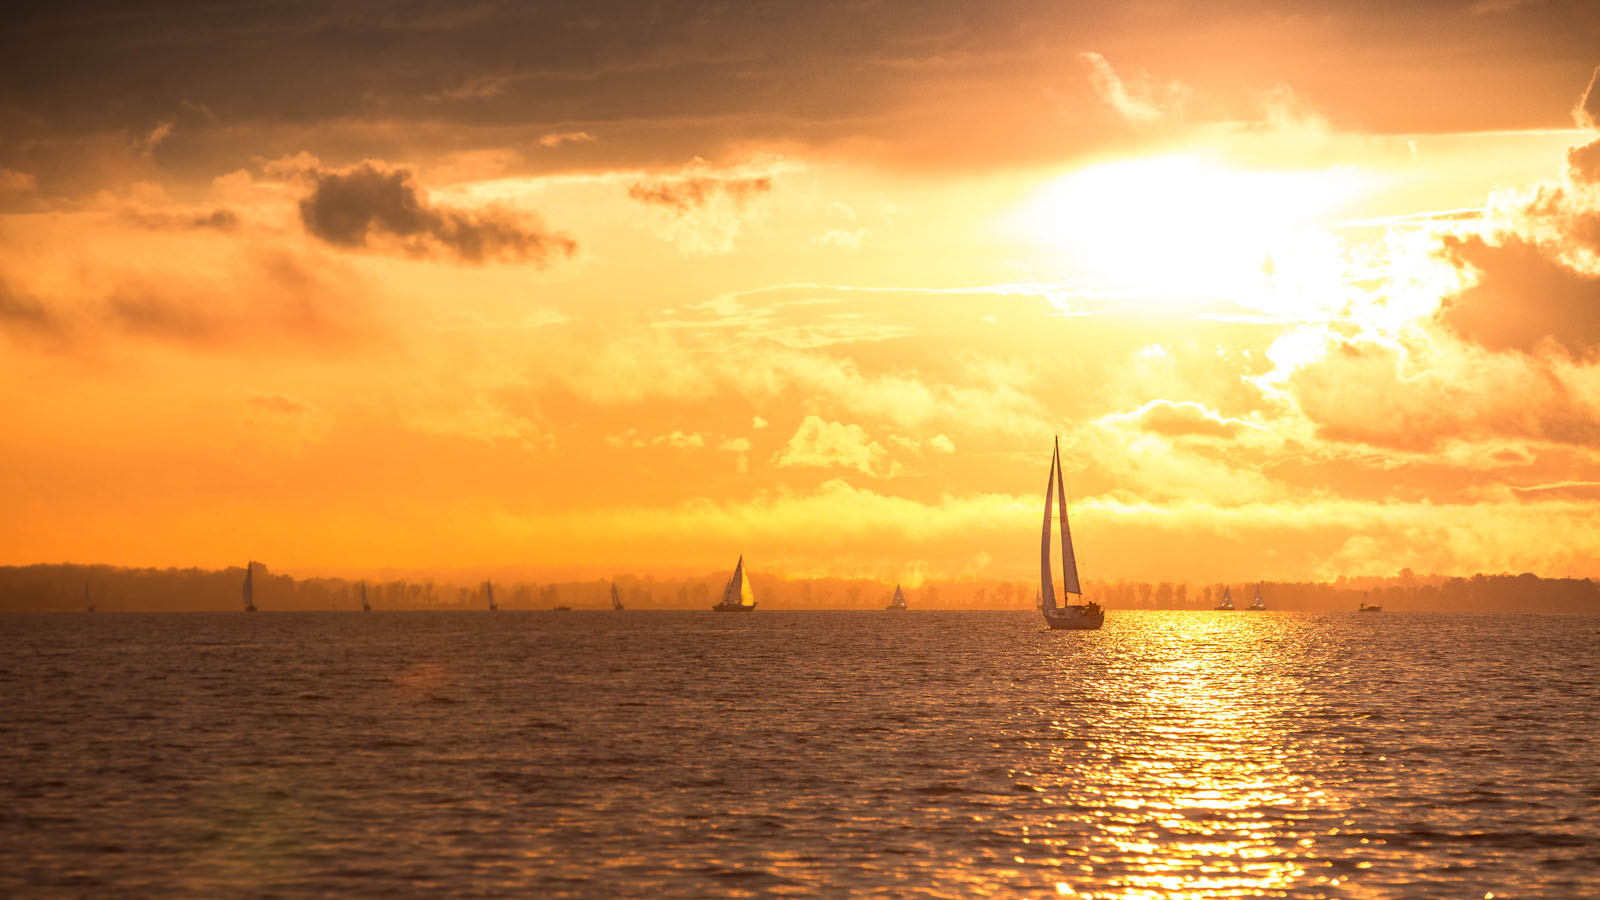 A sailboat returns to the Brittiana Yatch Club after an evening of racing in Ottawa Ontario